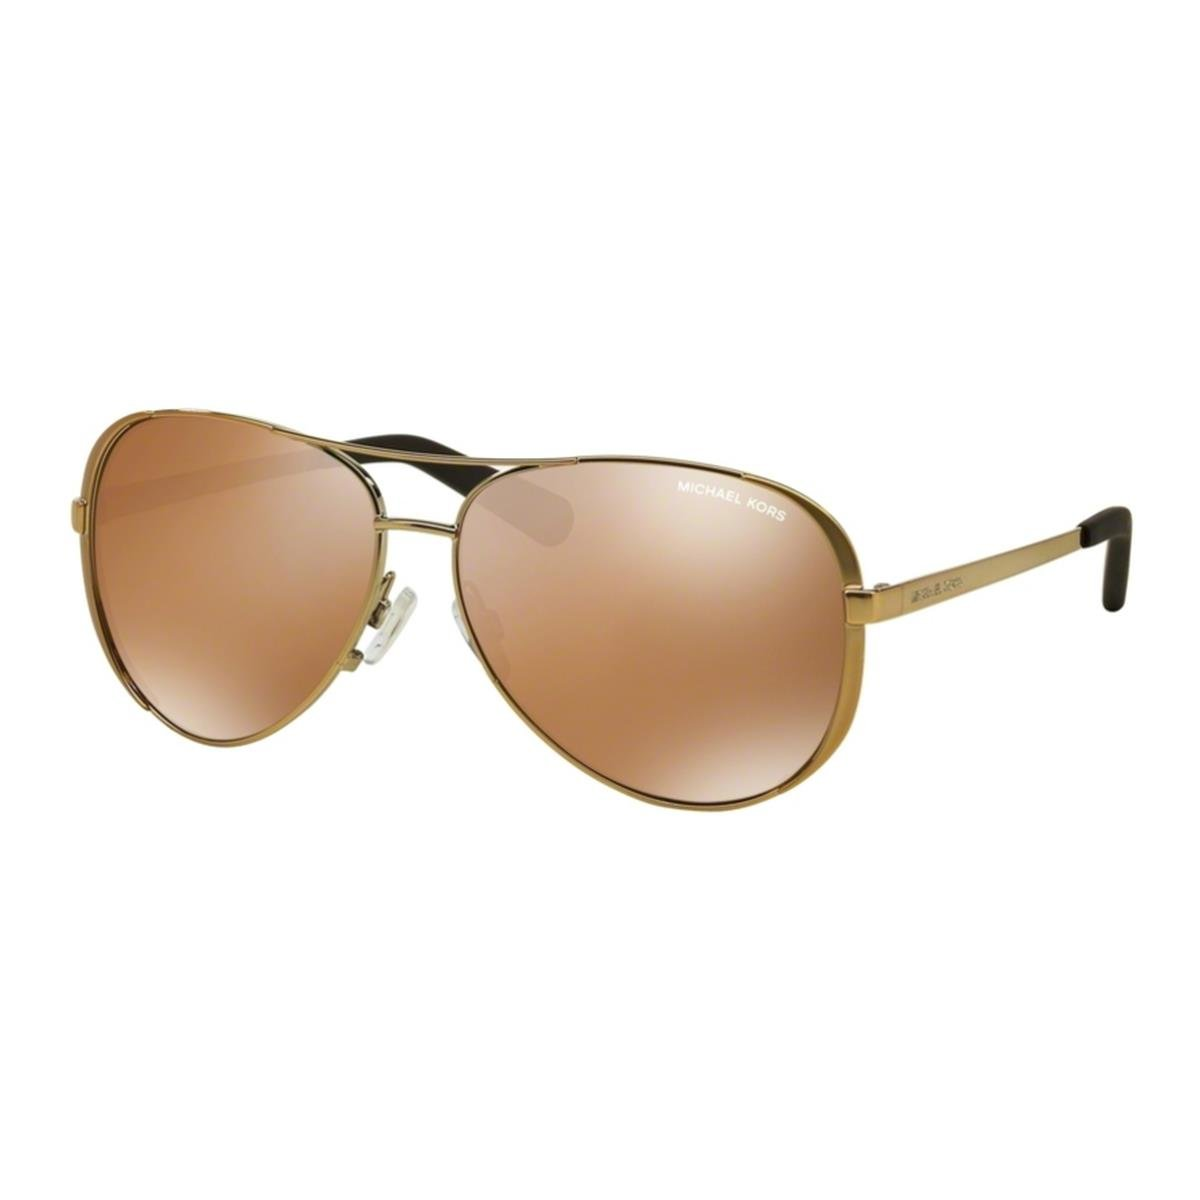 Michael Kors MK5004 Chelsea Sunglasses, Gold by Michael Kors